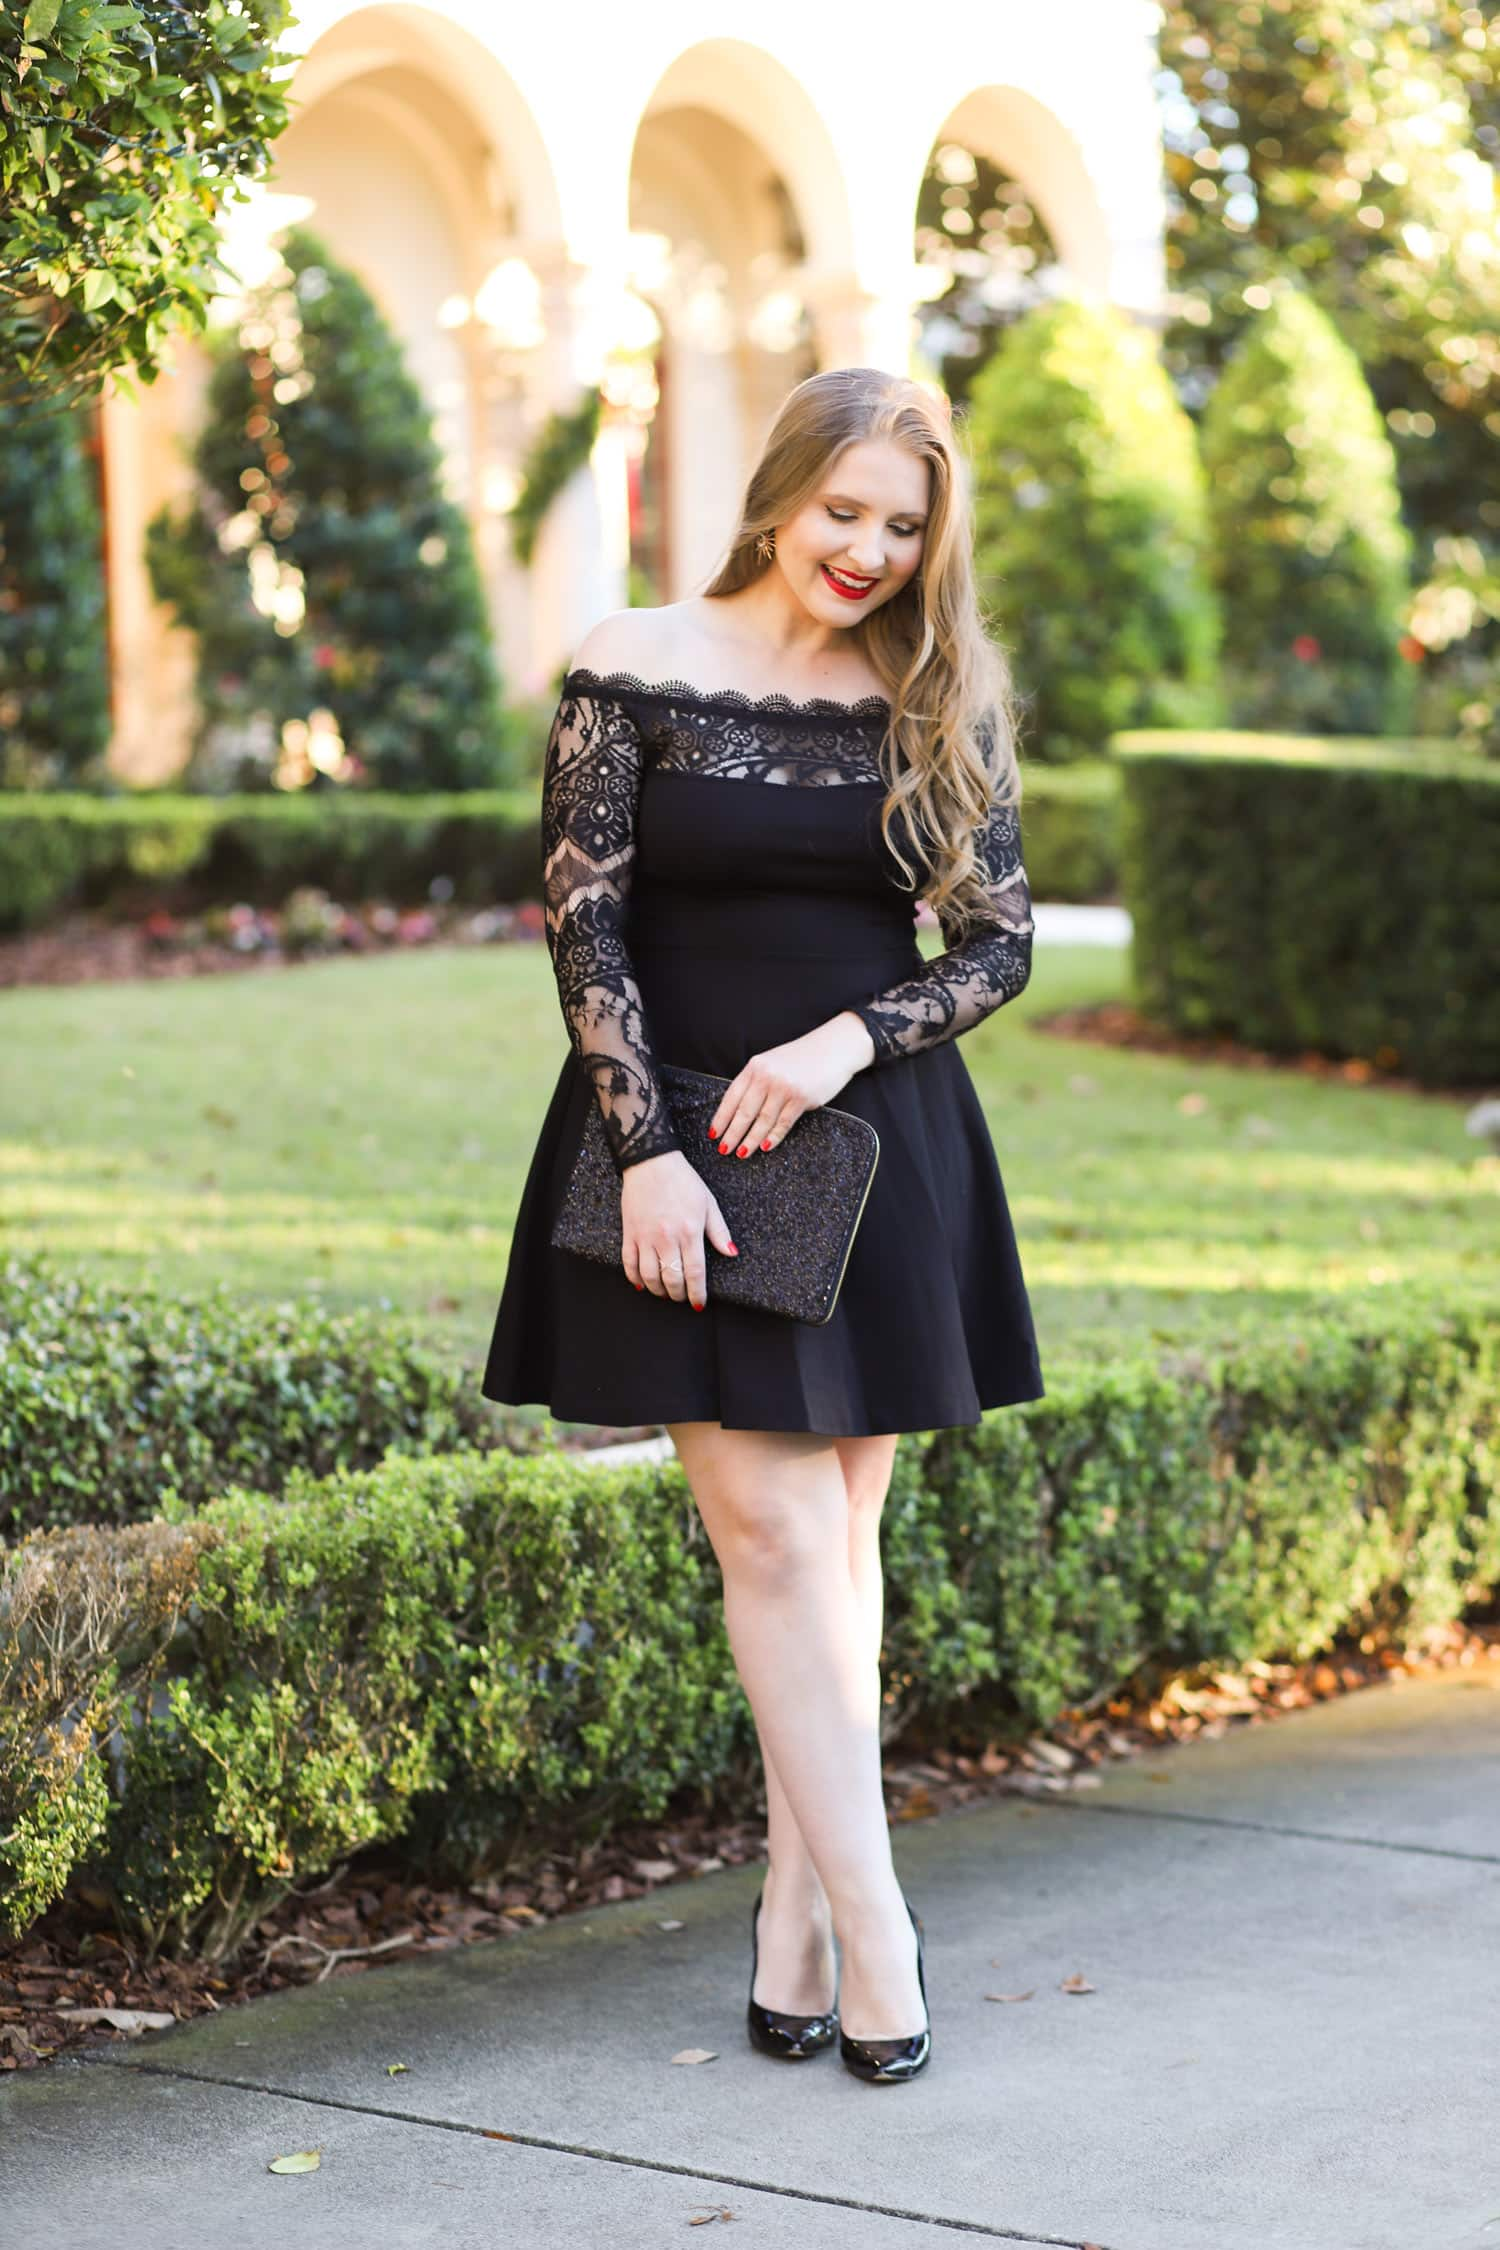 Hair cuttery | Beauty blogger | holiday glamour outfit black dress | Ashley Brooke Nicholas | Holiday outfit ideas | holiday outfits | black lace dress| holiday hairstyles | redken hair